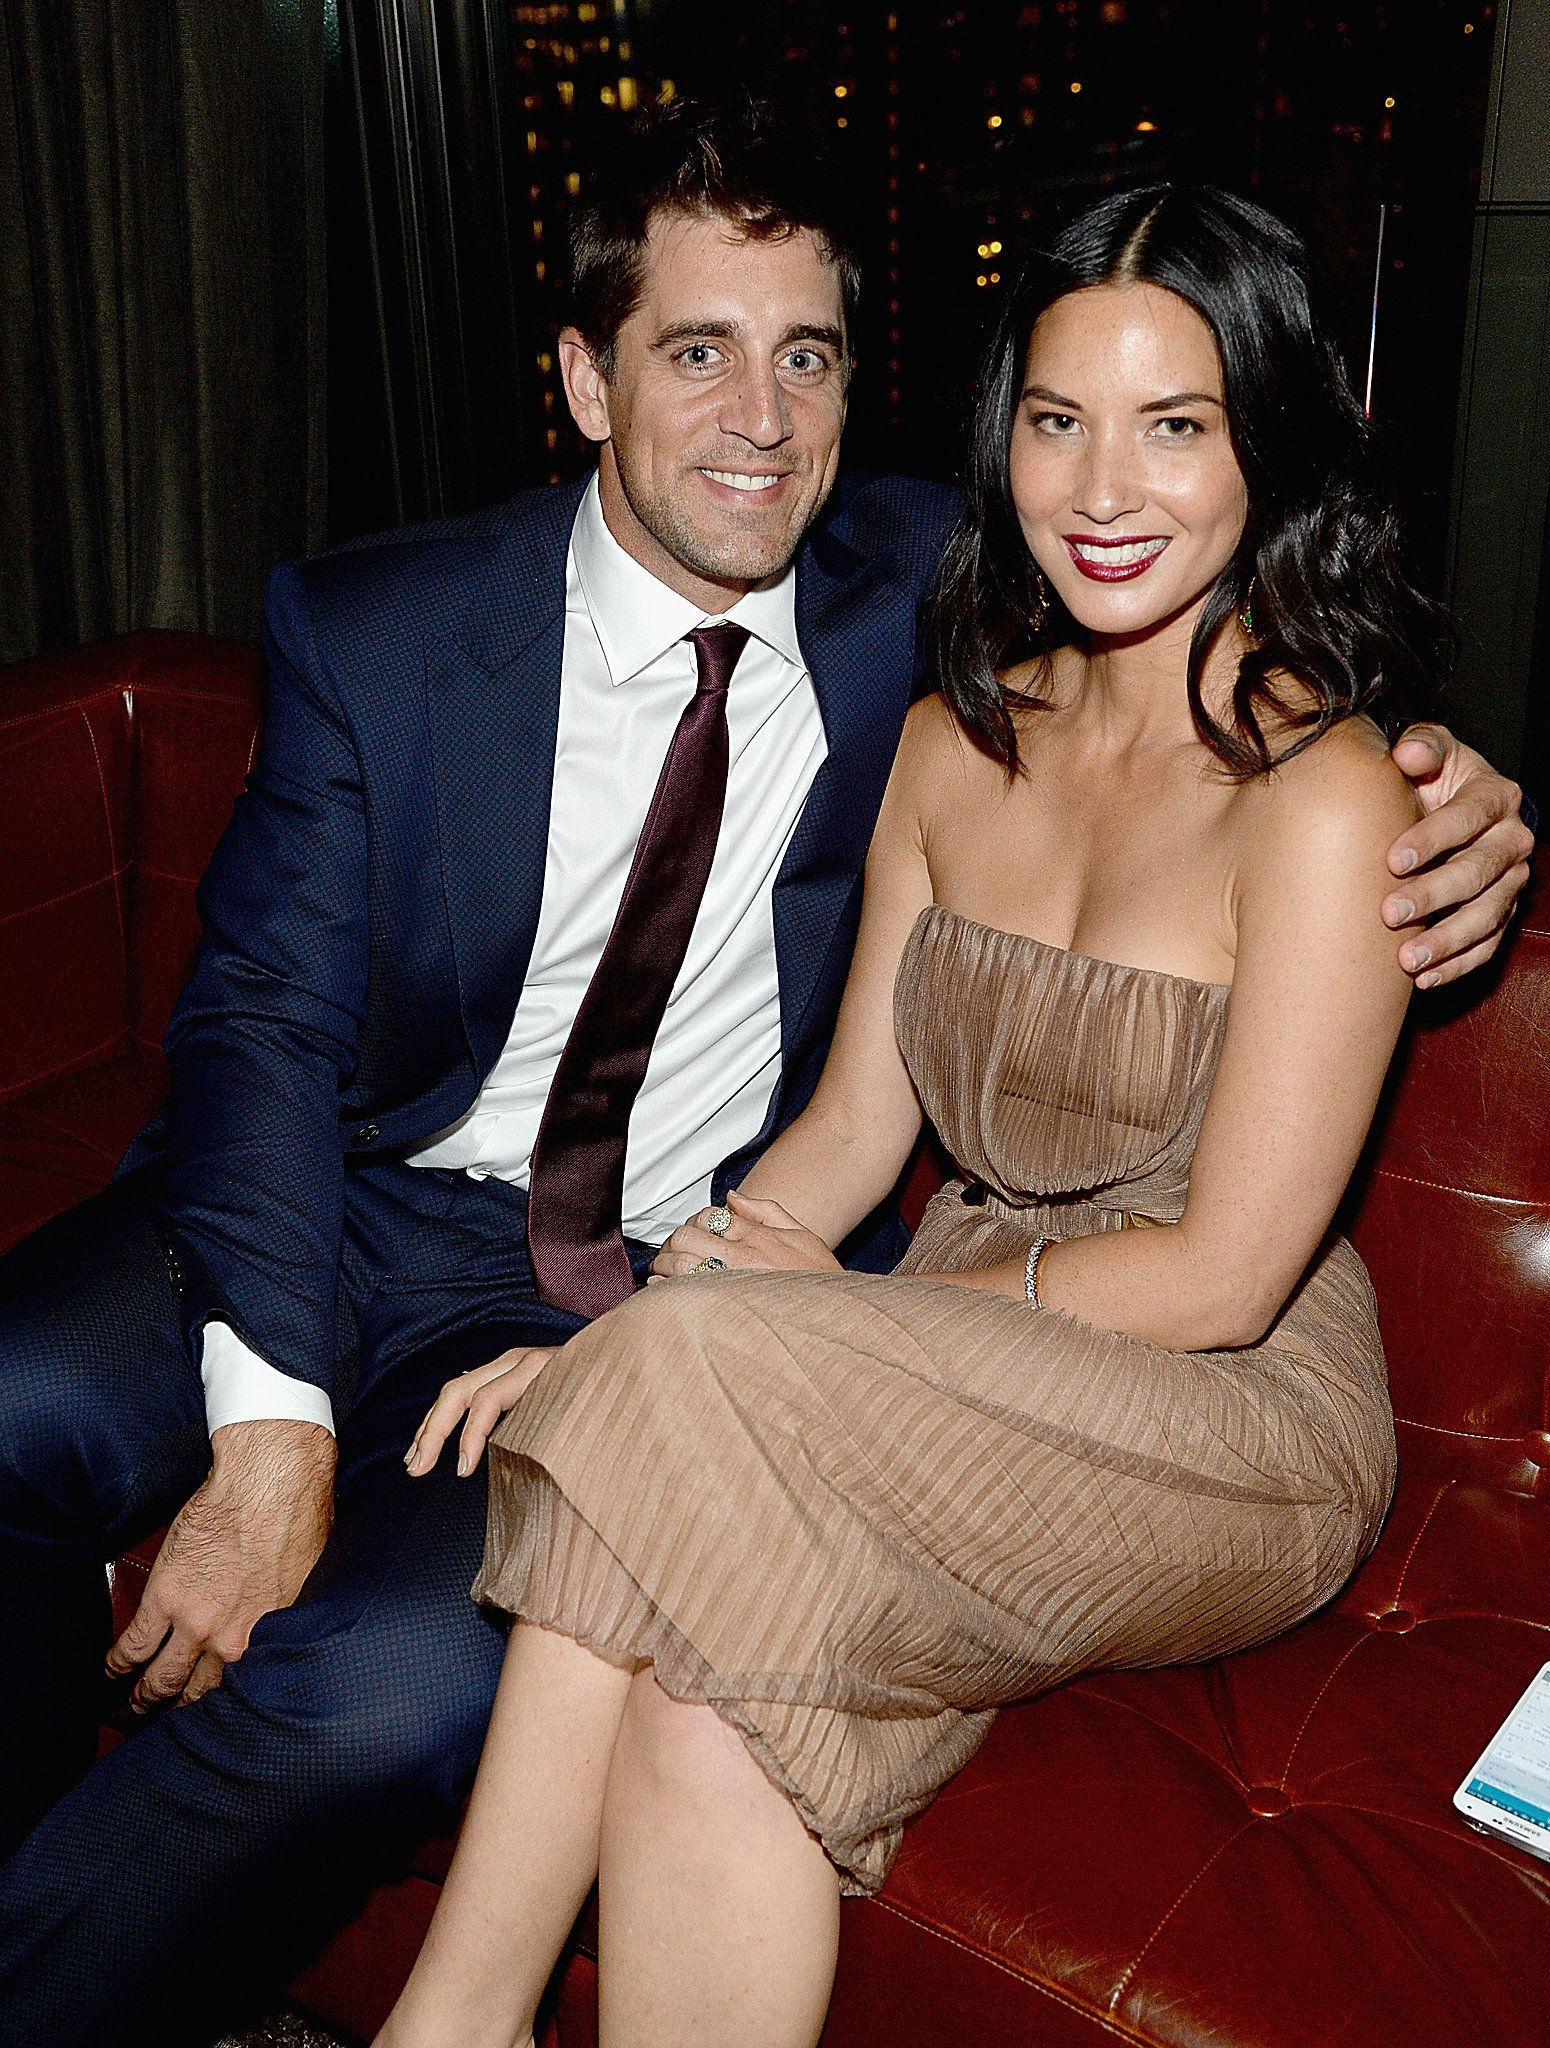 Aaron Rodgers And Olivia Munn Celebrities Olivia Munn Celebrity Couples